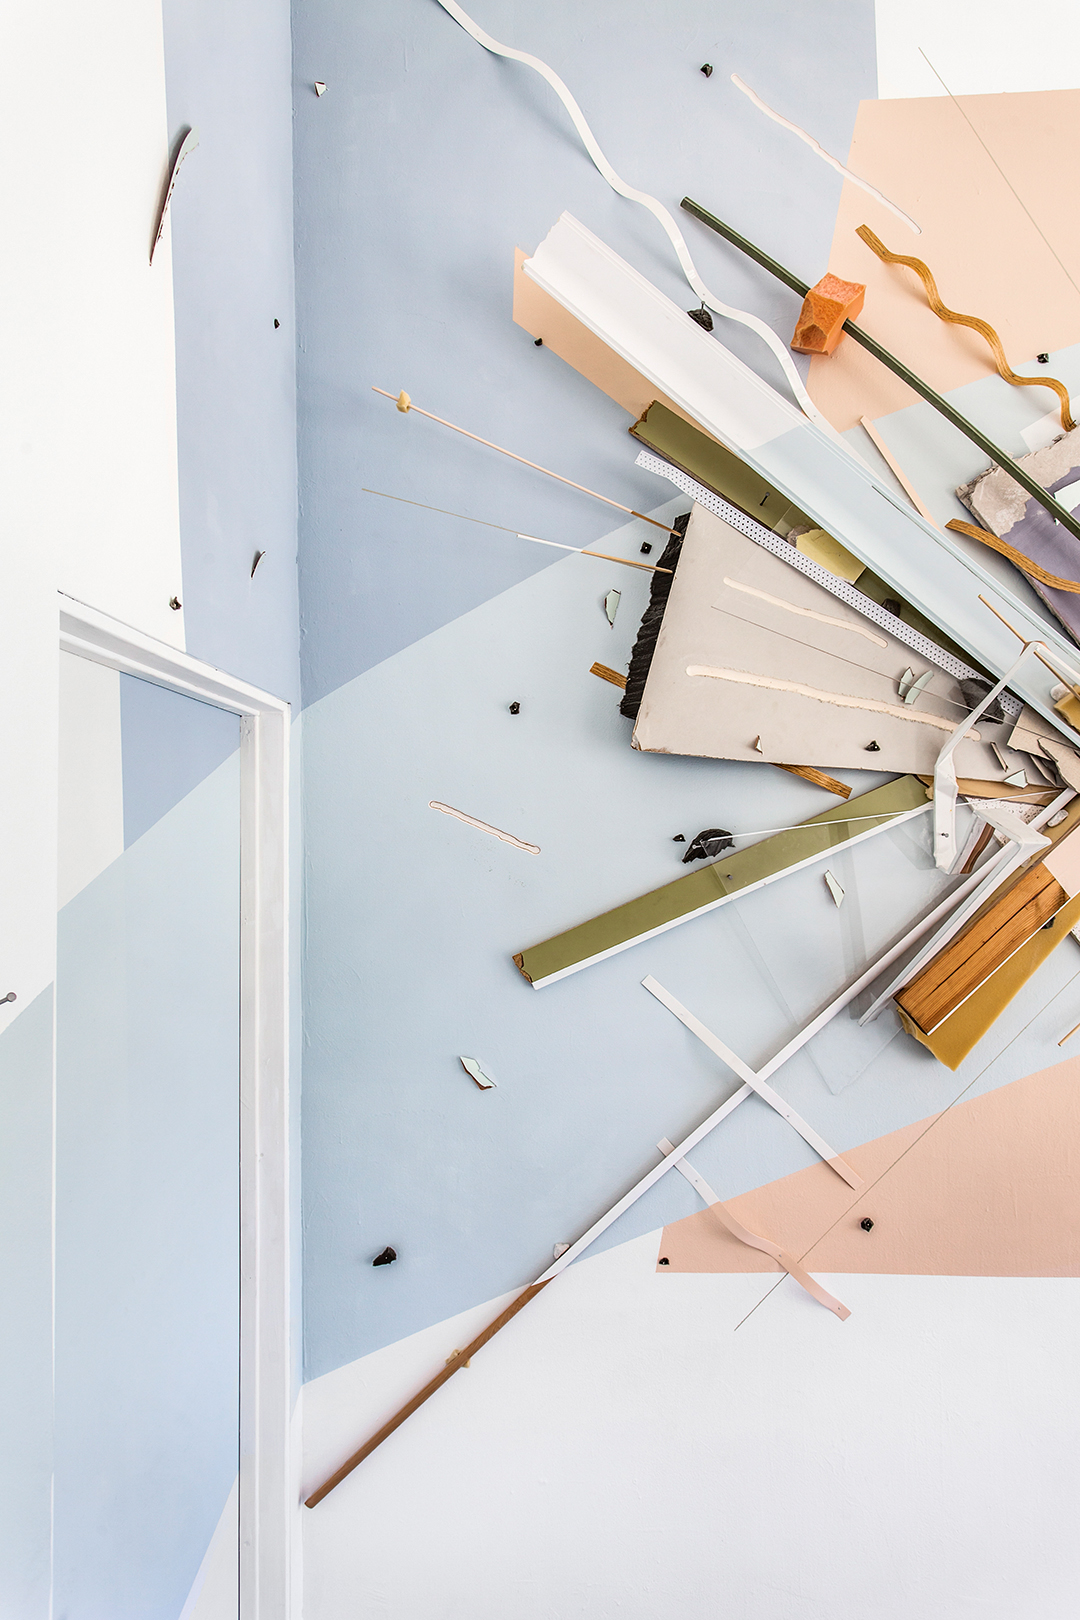 Broadcast  (detail)  264 x 156 x 22in  Acrylic, wood, ceiling tiles, foam, drywall, plexiglass, nails, laminate, rocks, and plastic on wall (Installation view at Locust Projects, Miami. Image courtesy of Zack Balber with Ginger Photography Inc.)  2016